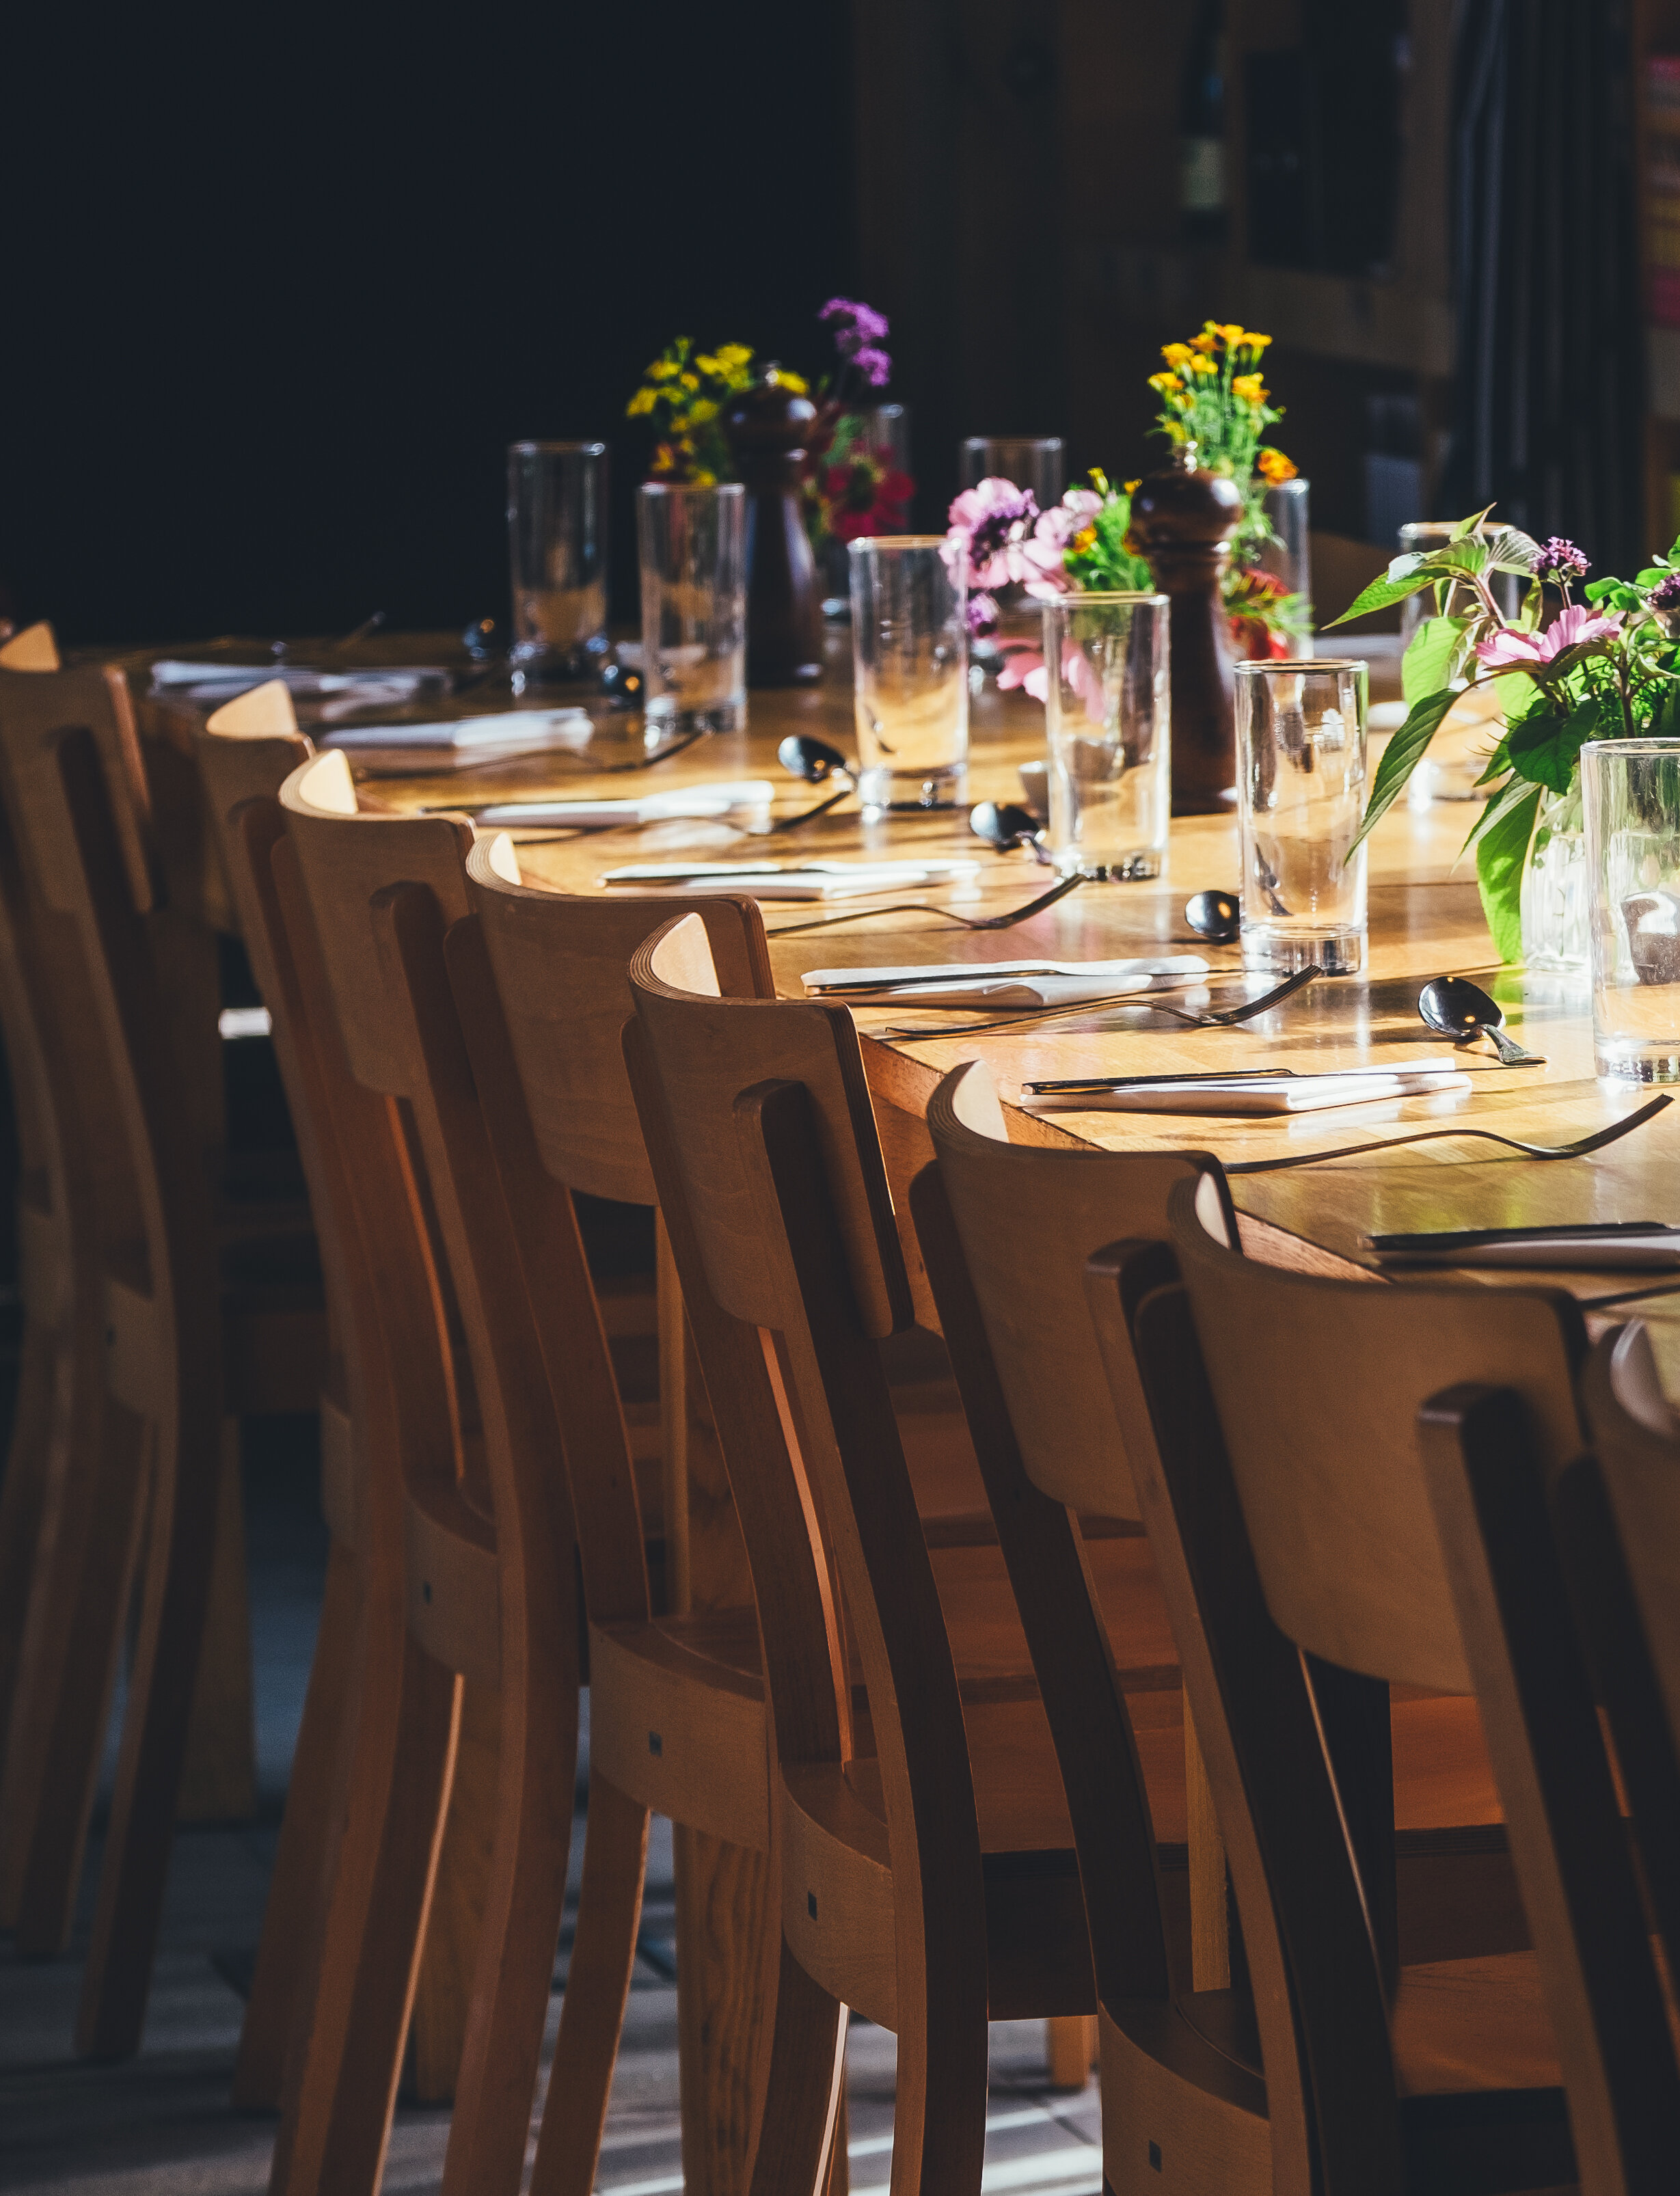 private parties • exclusive tastings • COMPANY EVENTS - host your next gathering at york